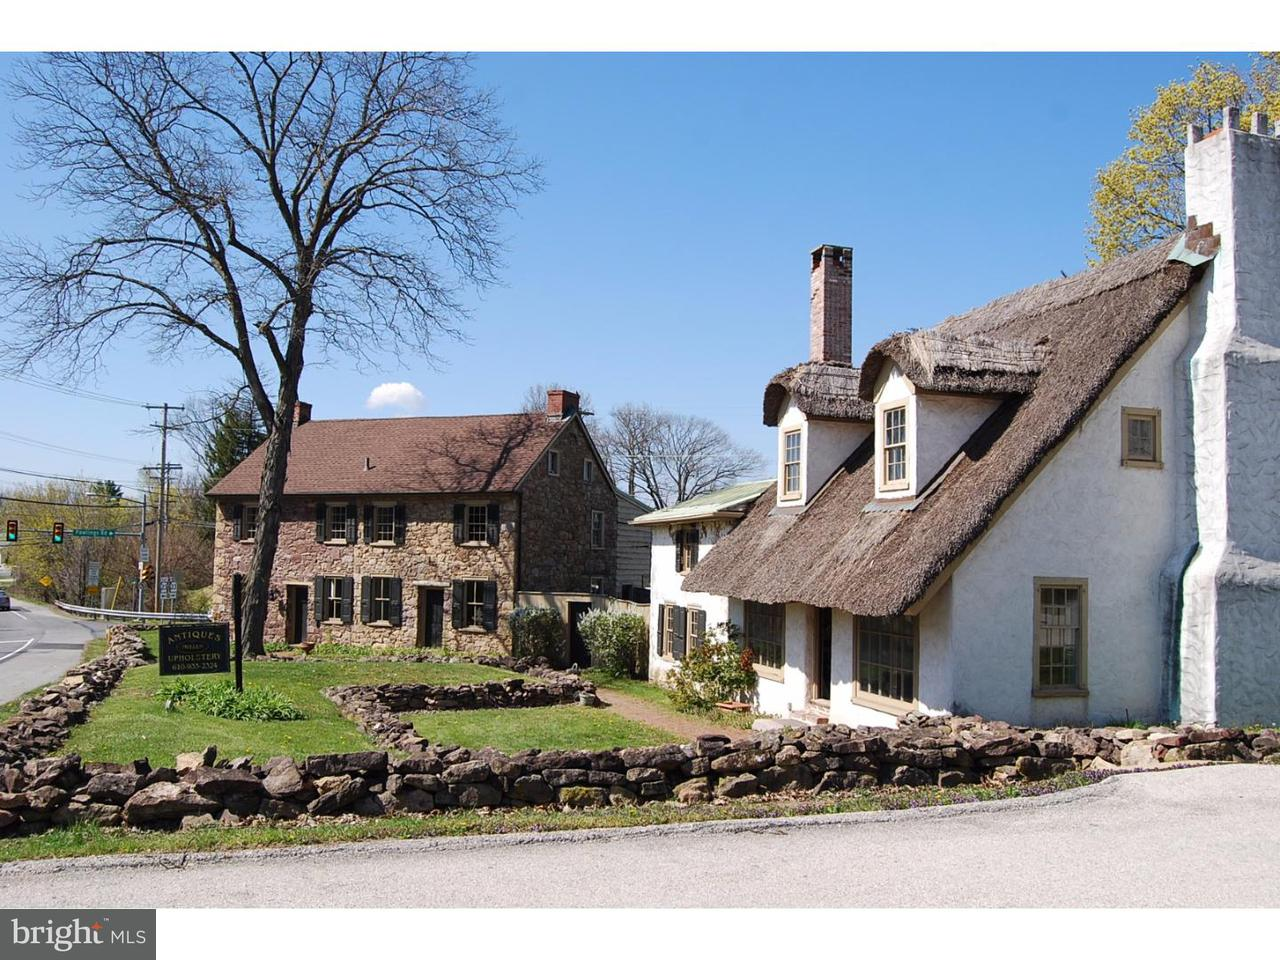 1243  Valley Forge Phoenixville, PA 19460